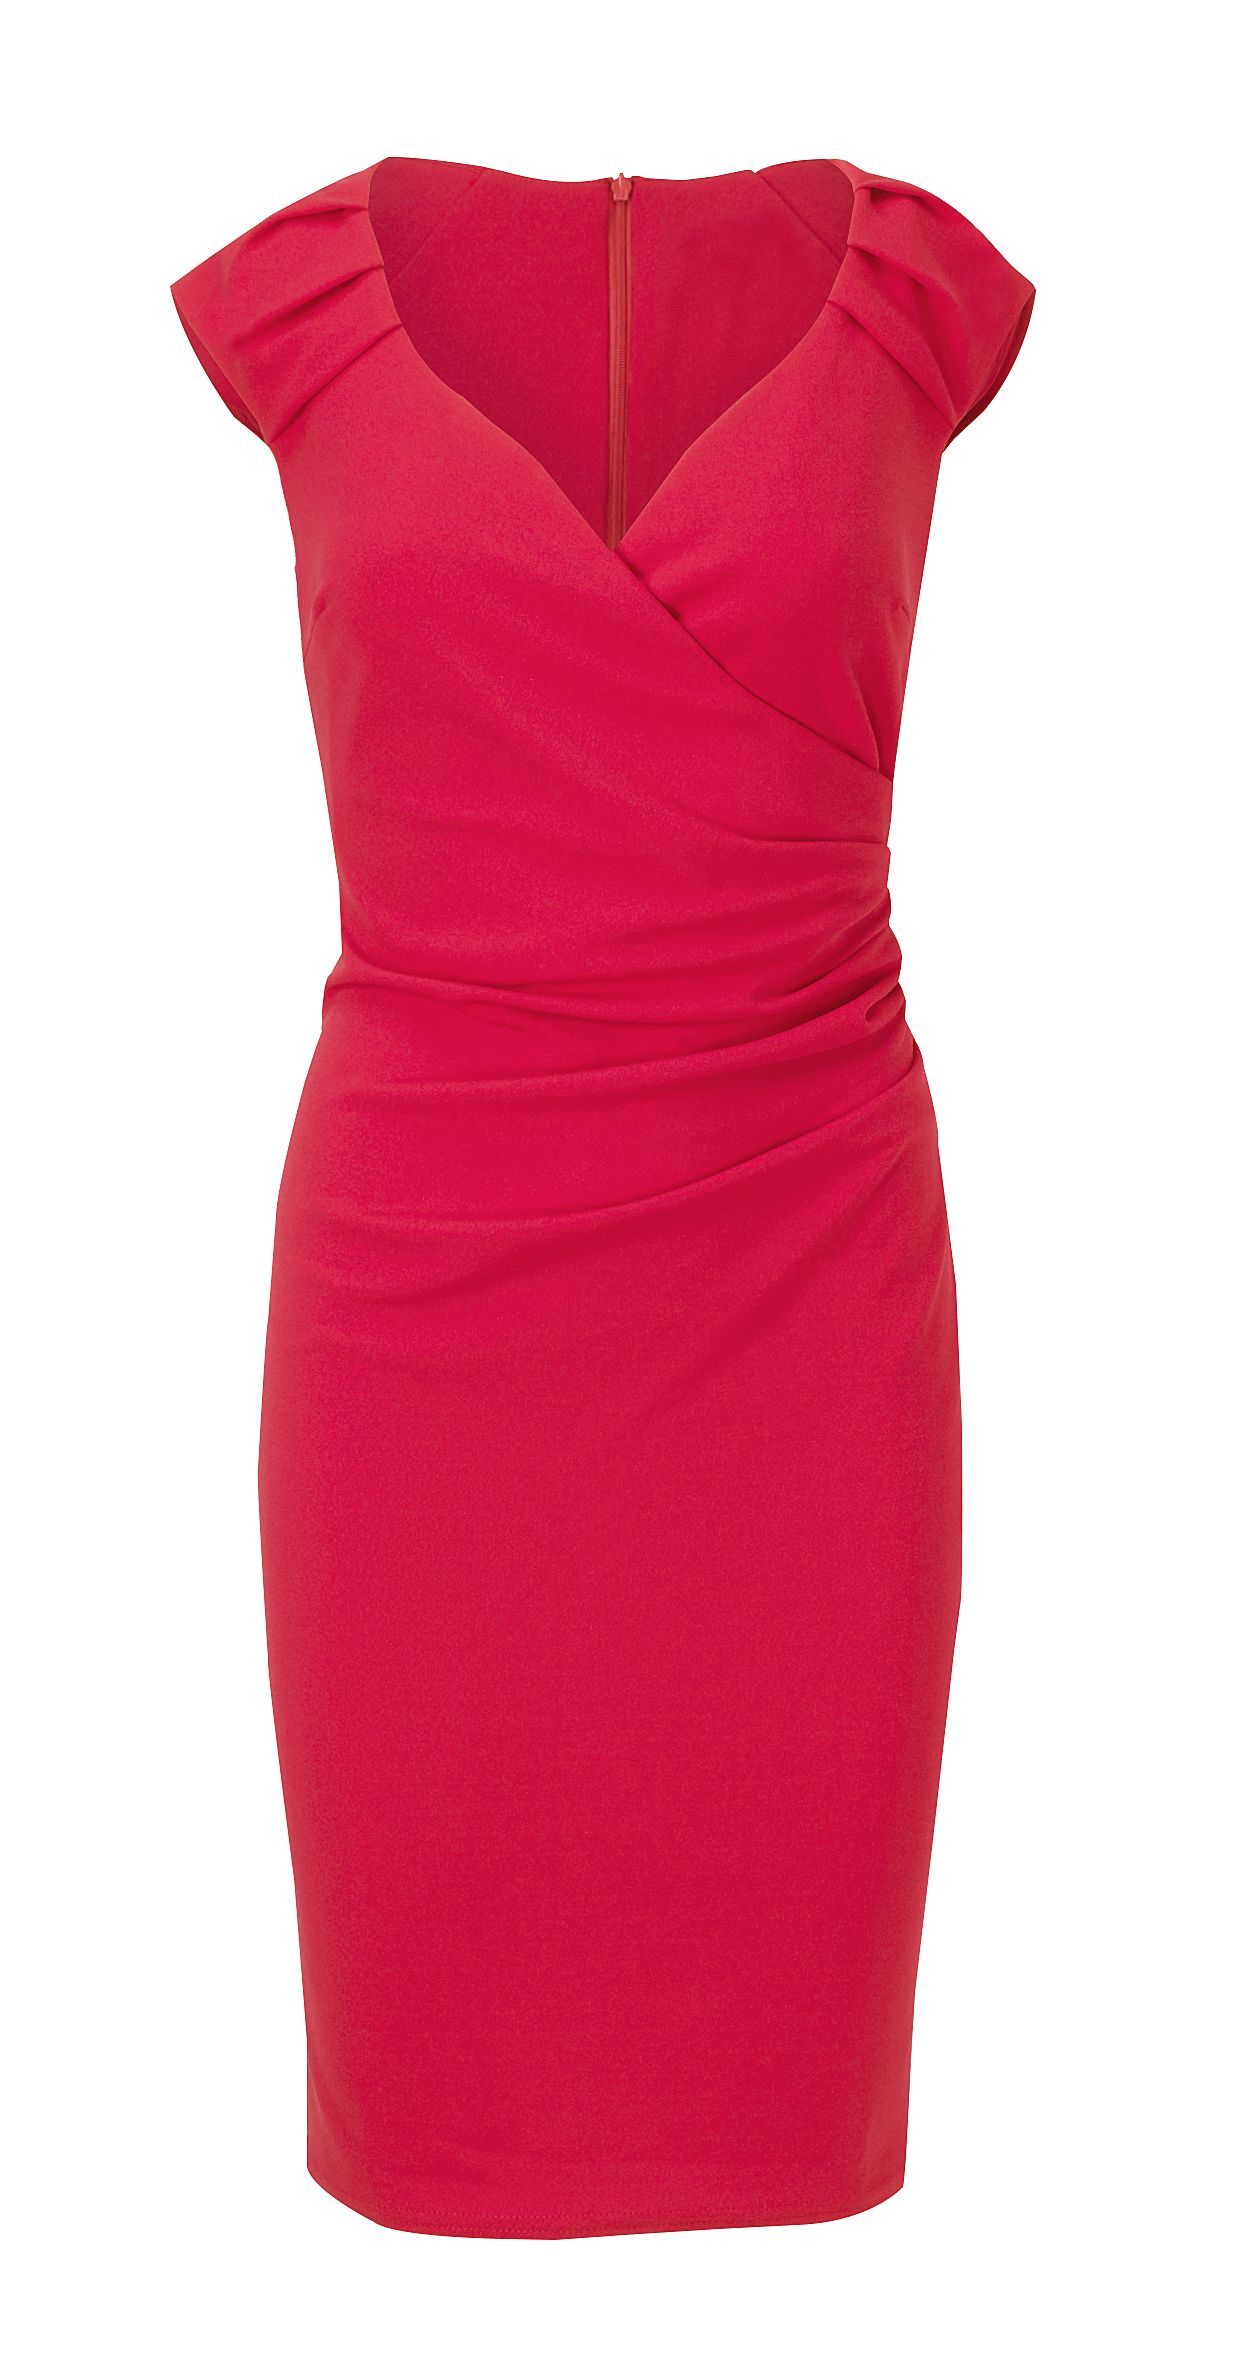 Jessica Wright Kassey Red Bodycon Dress £60.00 http://www.sistaglam.co.uk/jessica-wright-dresses/jessica-wright-kassey-red-bodycon-dress-1736